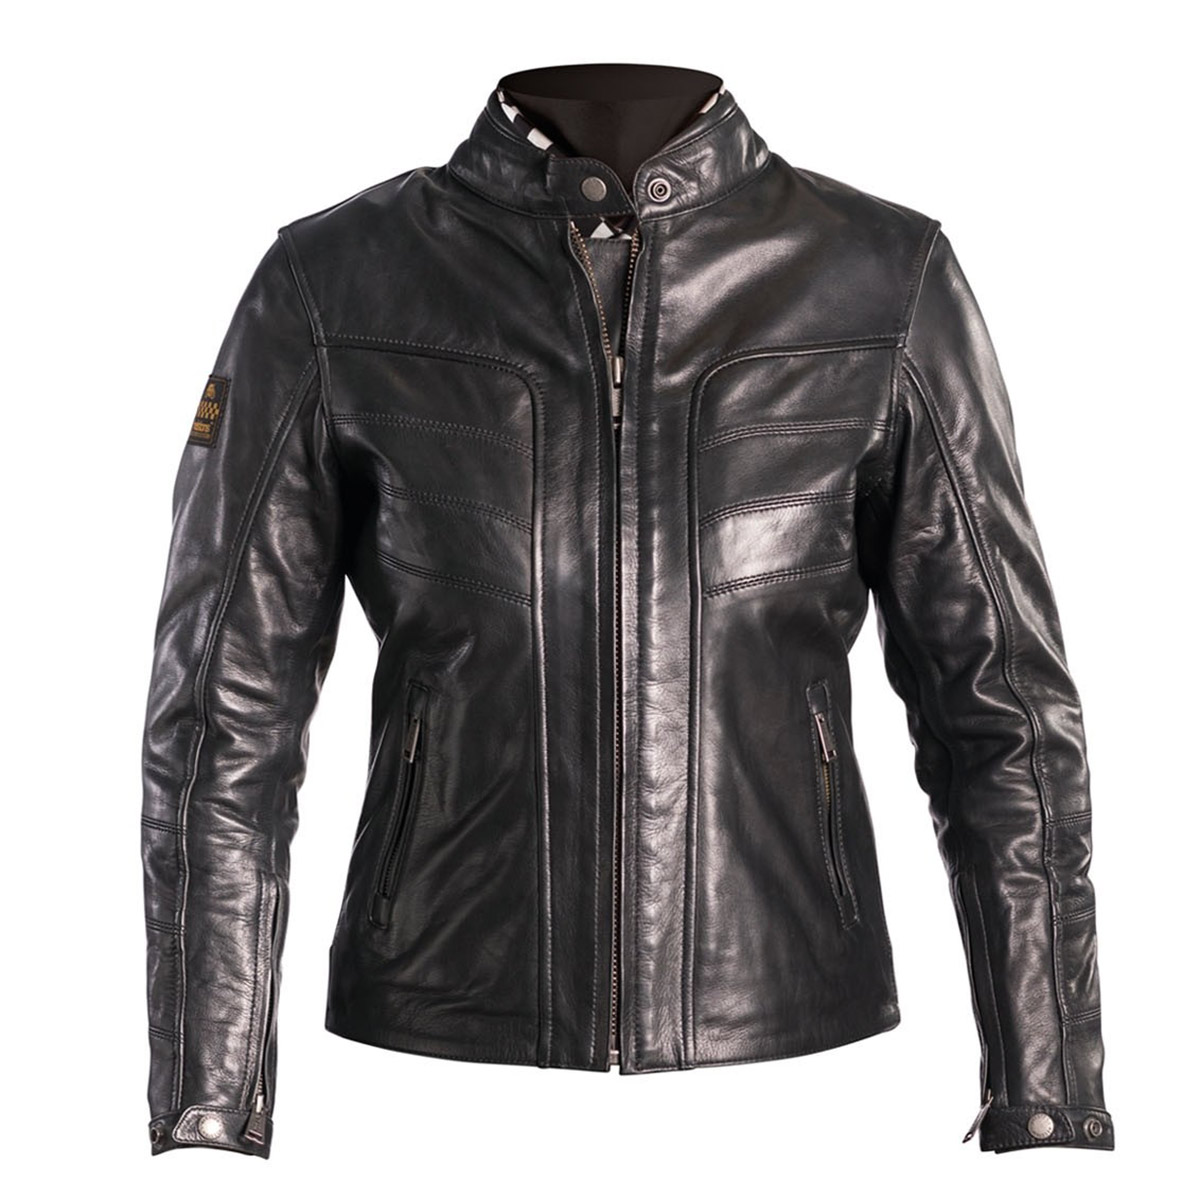 Helstons Ladies Sarah Black Leather Jacket